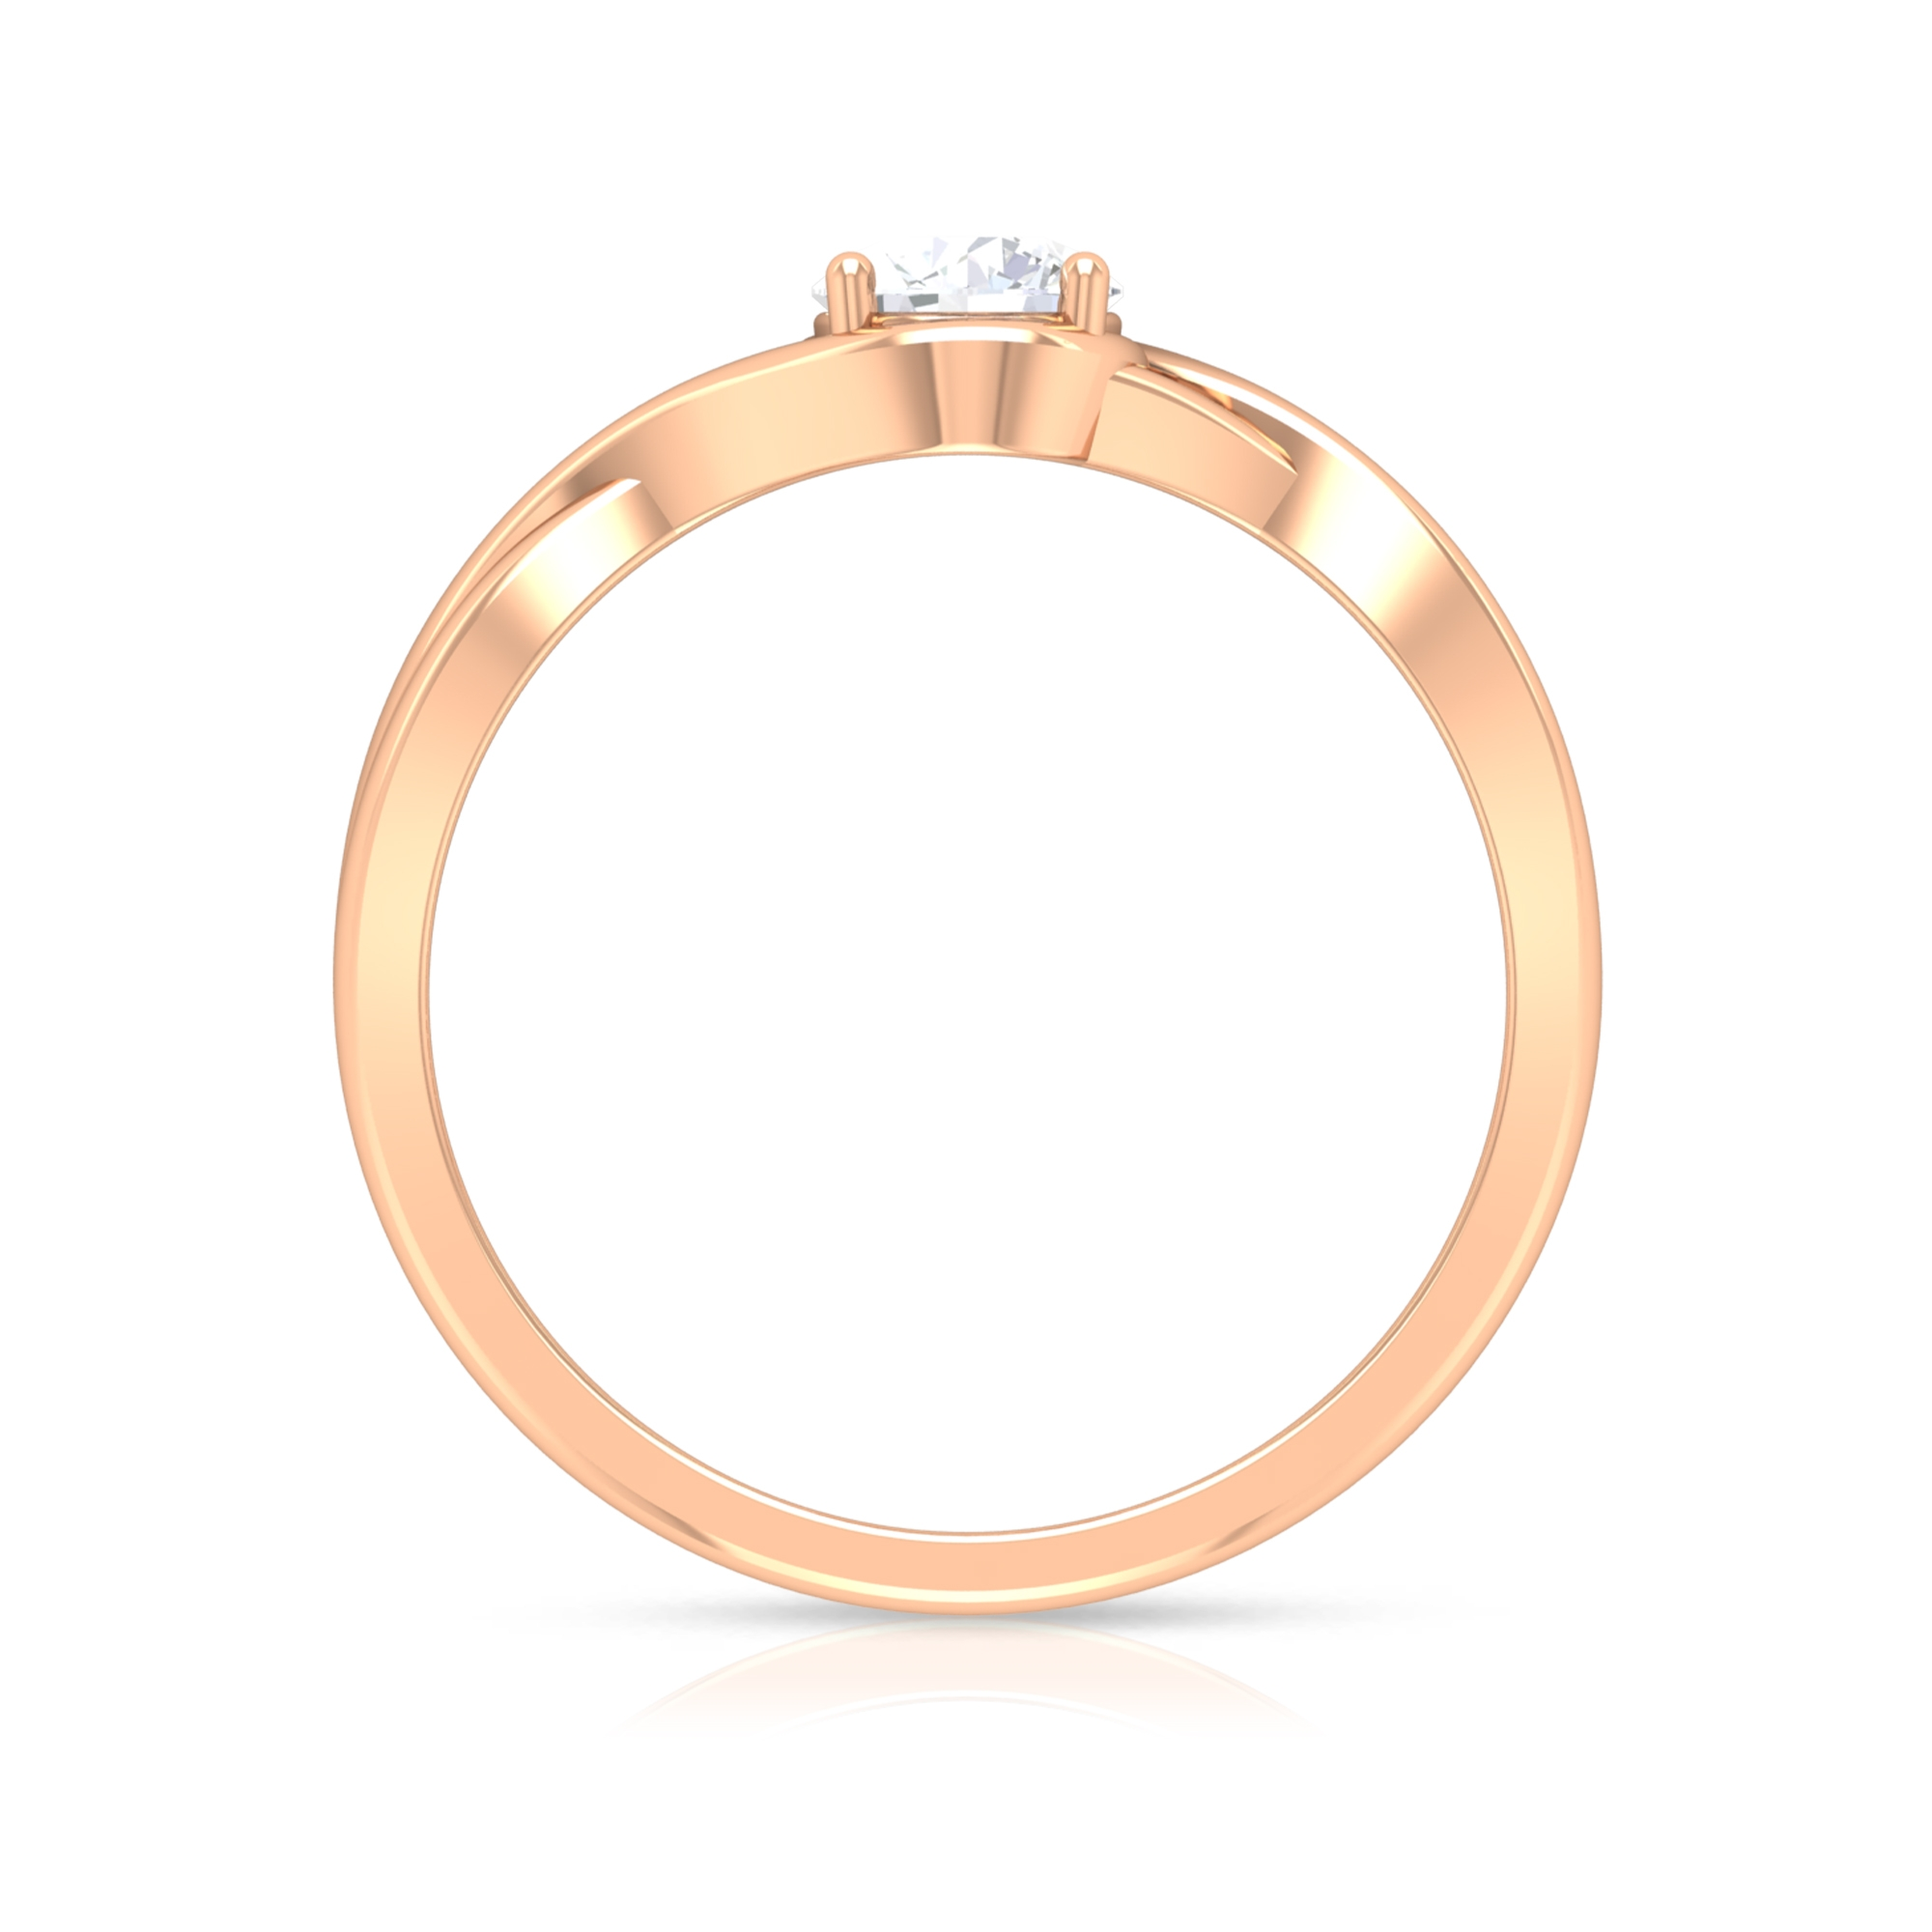 5 MM Round Cut Diamond Solitaire Ring in 4 Prong Setting with Crossover Shank